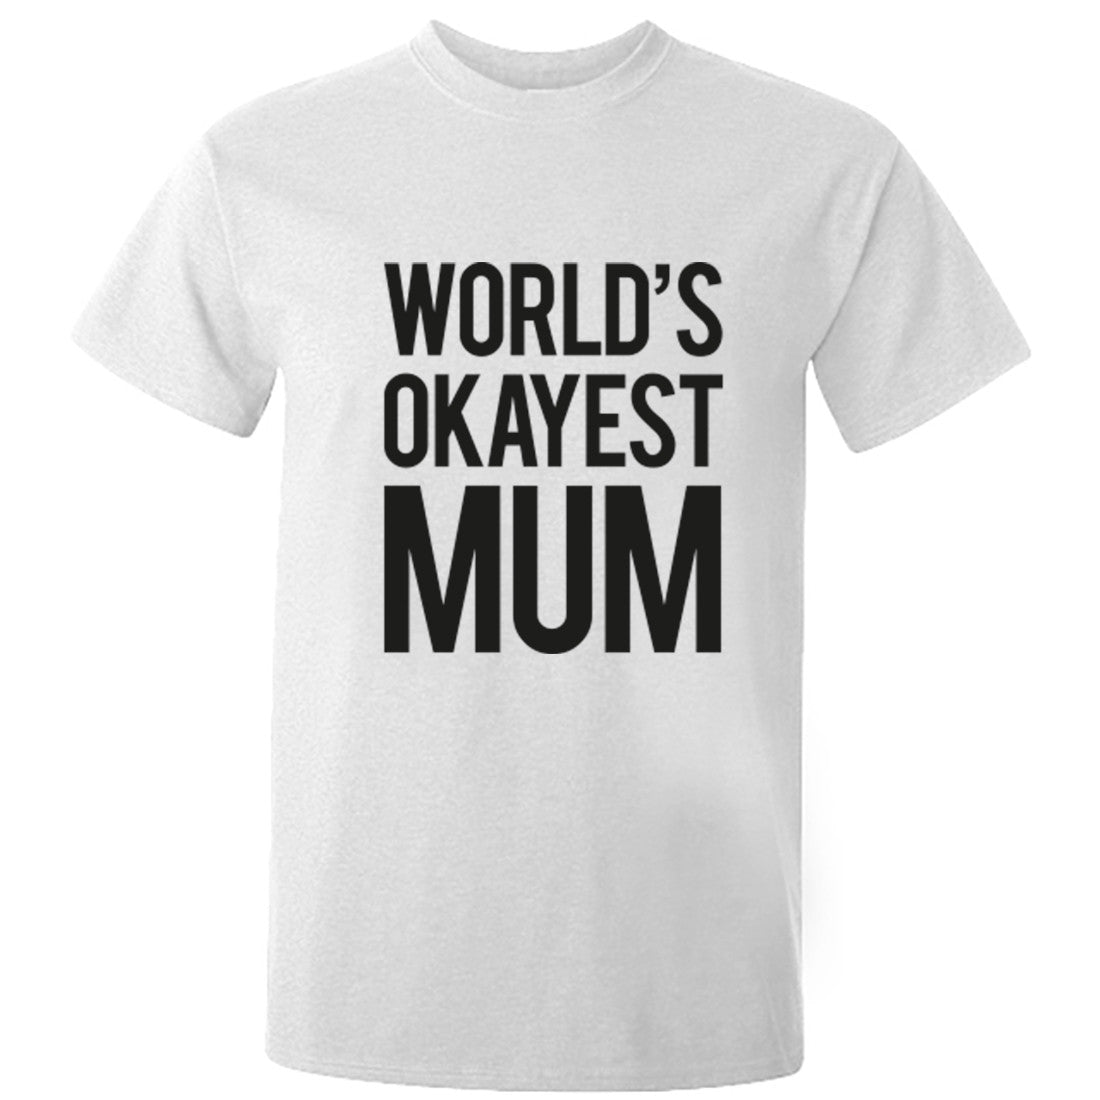 World's Okayest Mum unisex t-shirt K0236